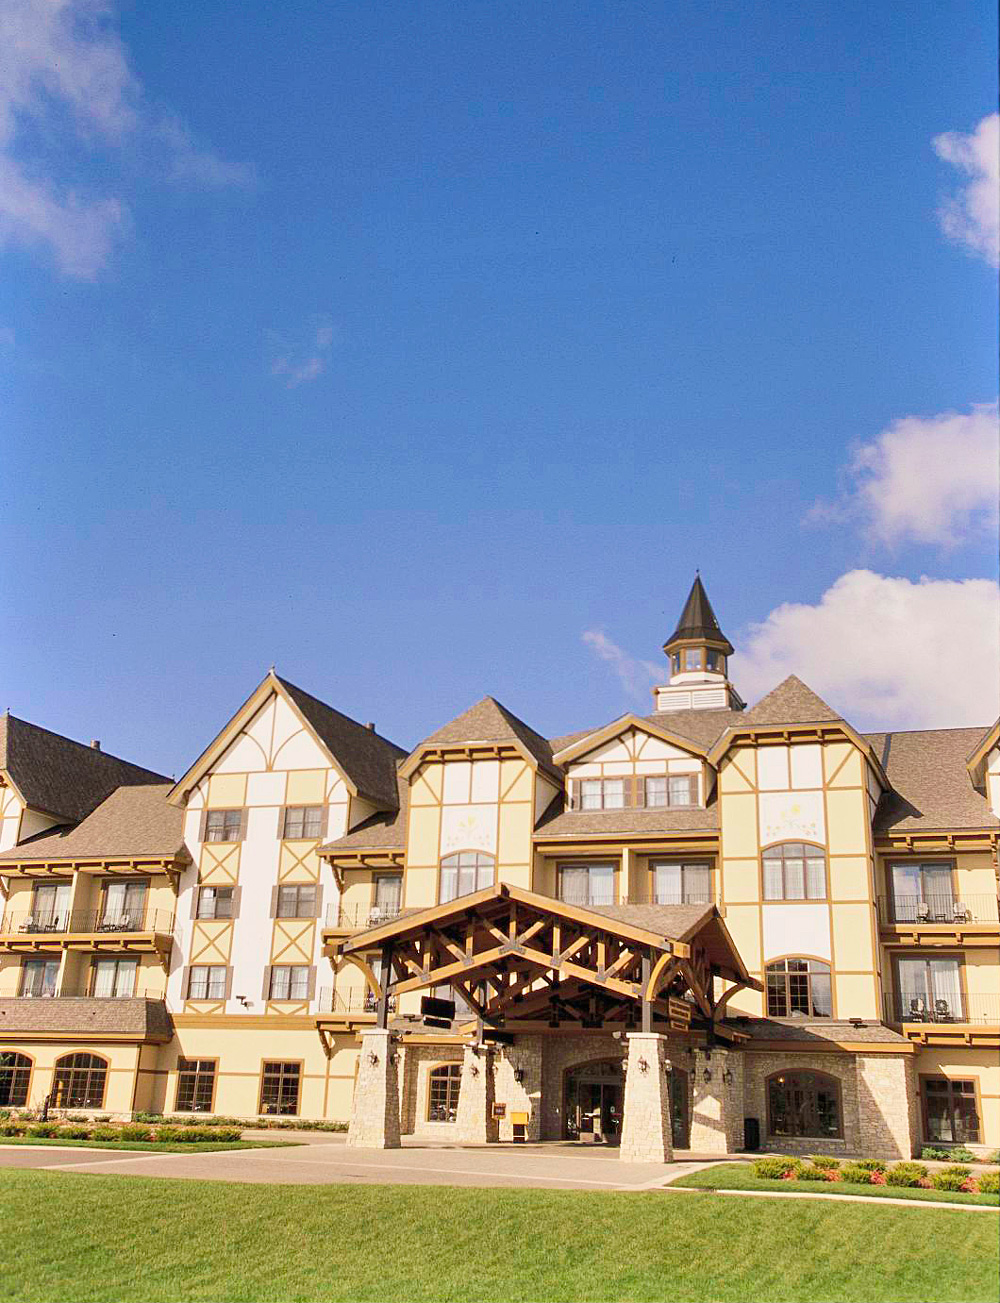 Traverse bays: where to stay